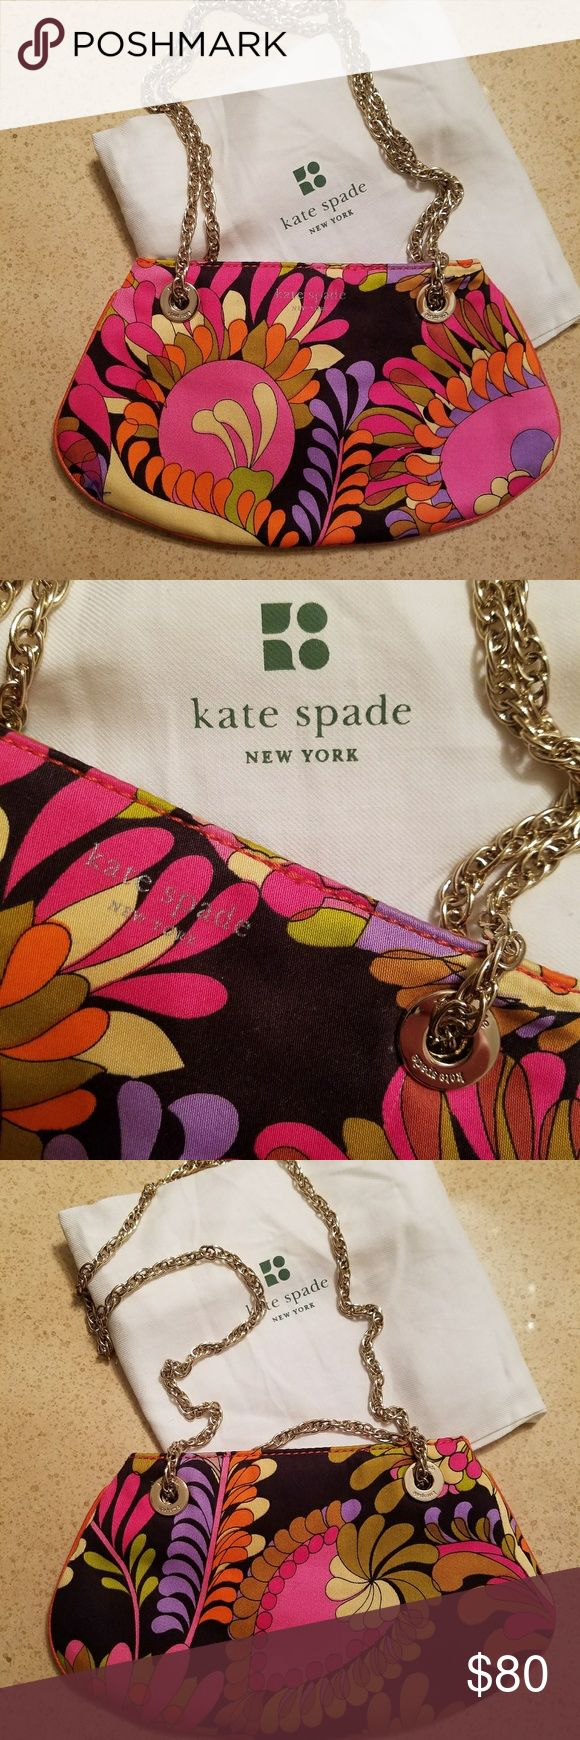 KATE SPADE small floral shoulder bag Vibrant floral envelope bag with leather trim and gold hardware. In perfect condition dont think I even wore it once! Dustbag include. Slit pocket inside. kate spade Bags Shoulder Bags